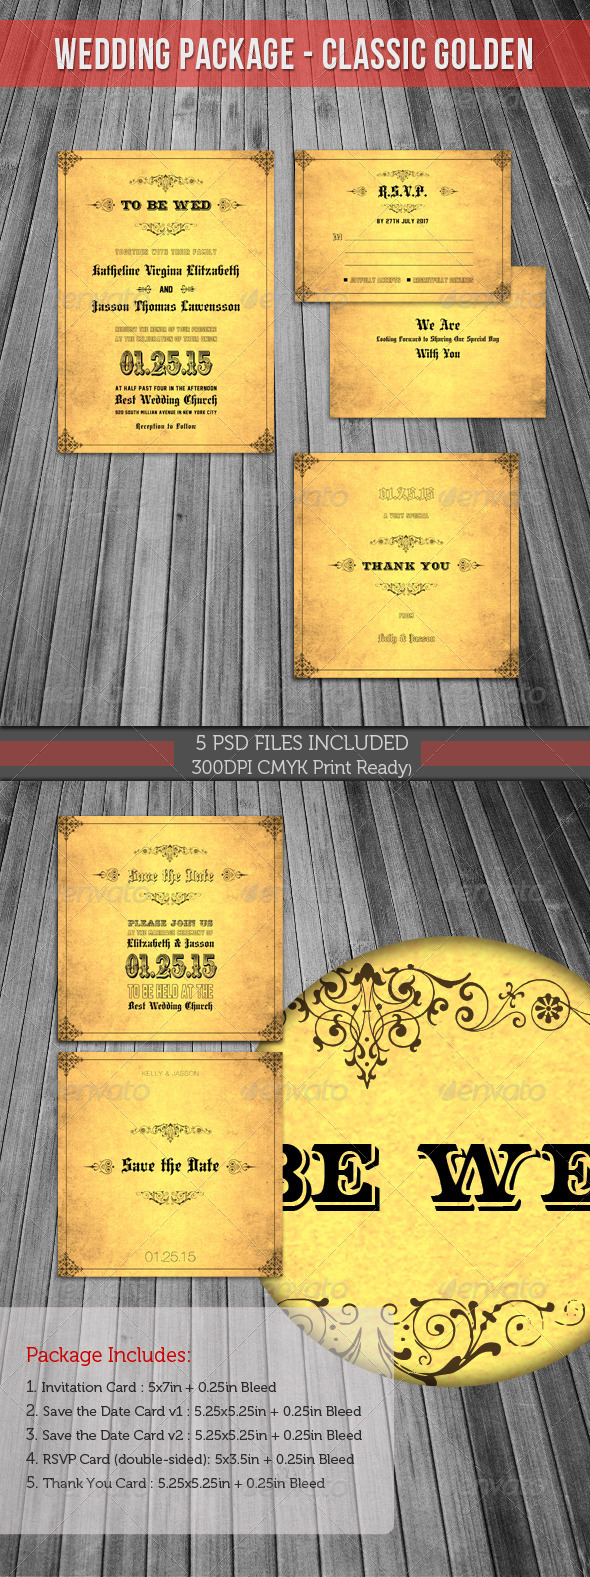 Wedding Invitation Package - Classic Golden - Weddings Cards & Invites